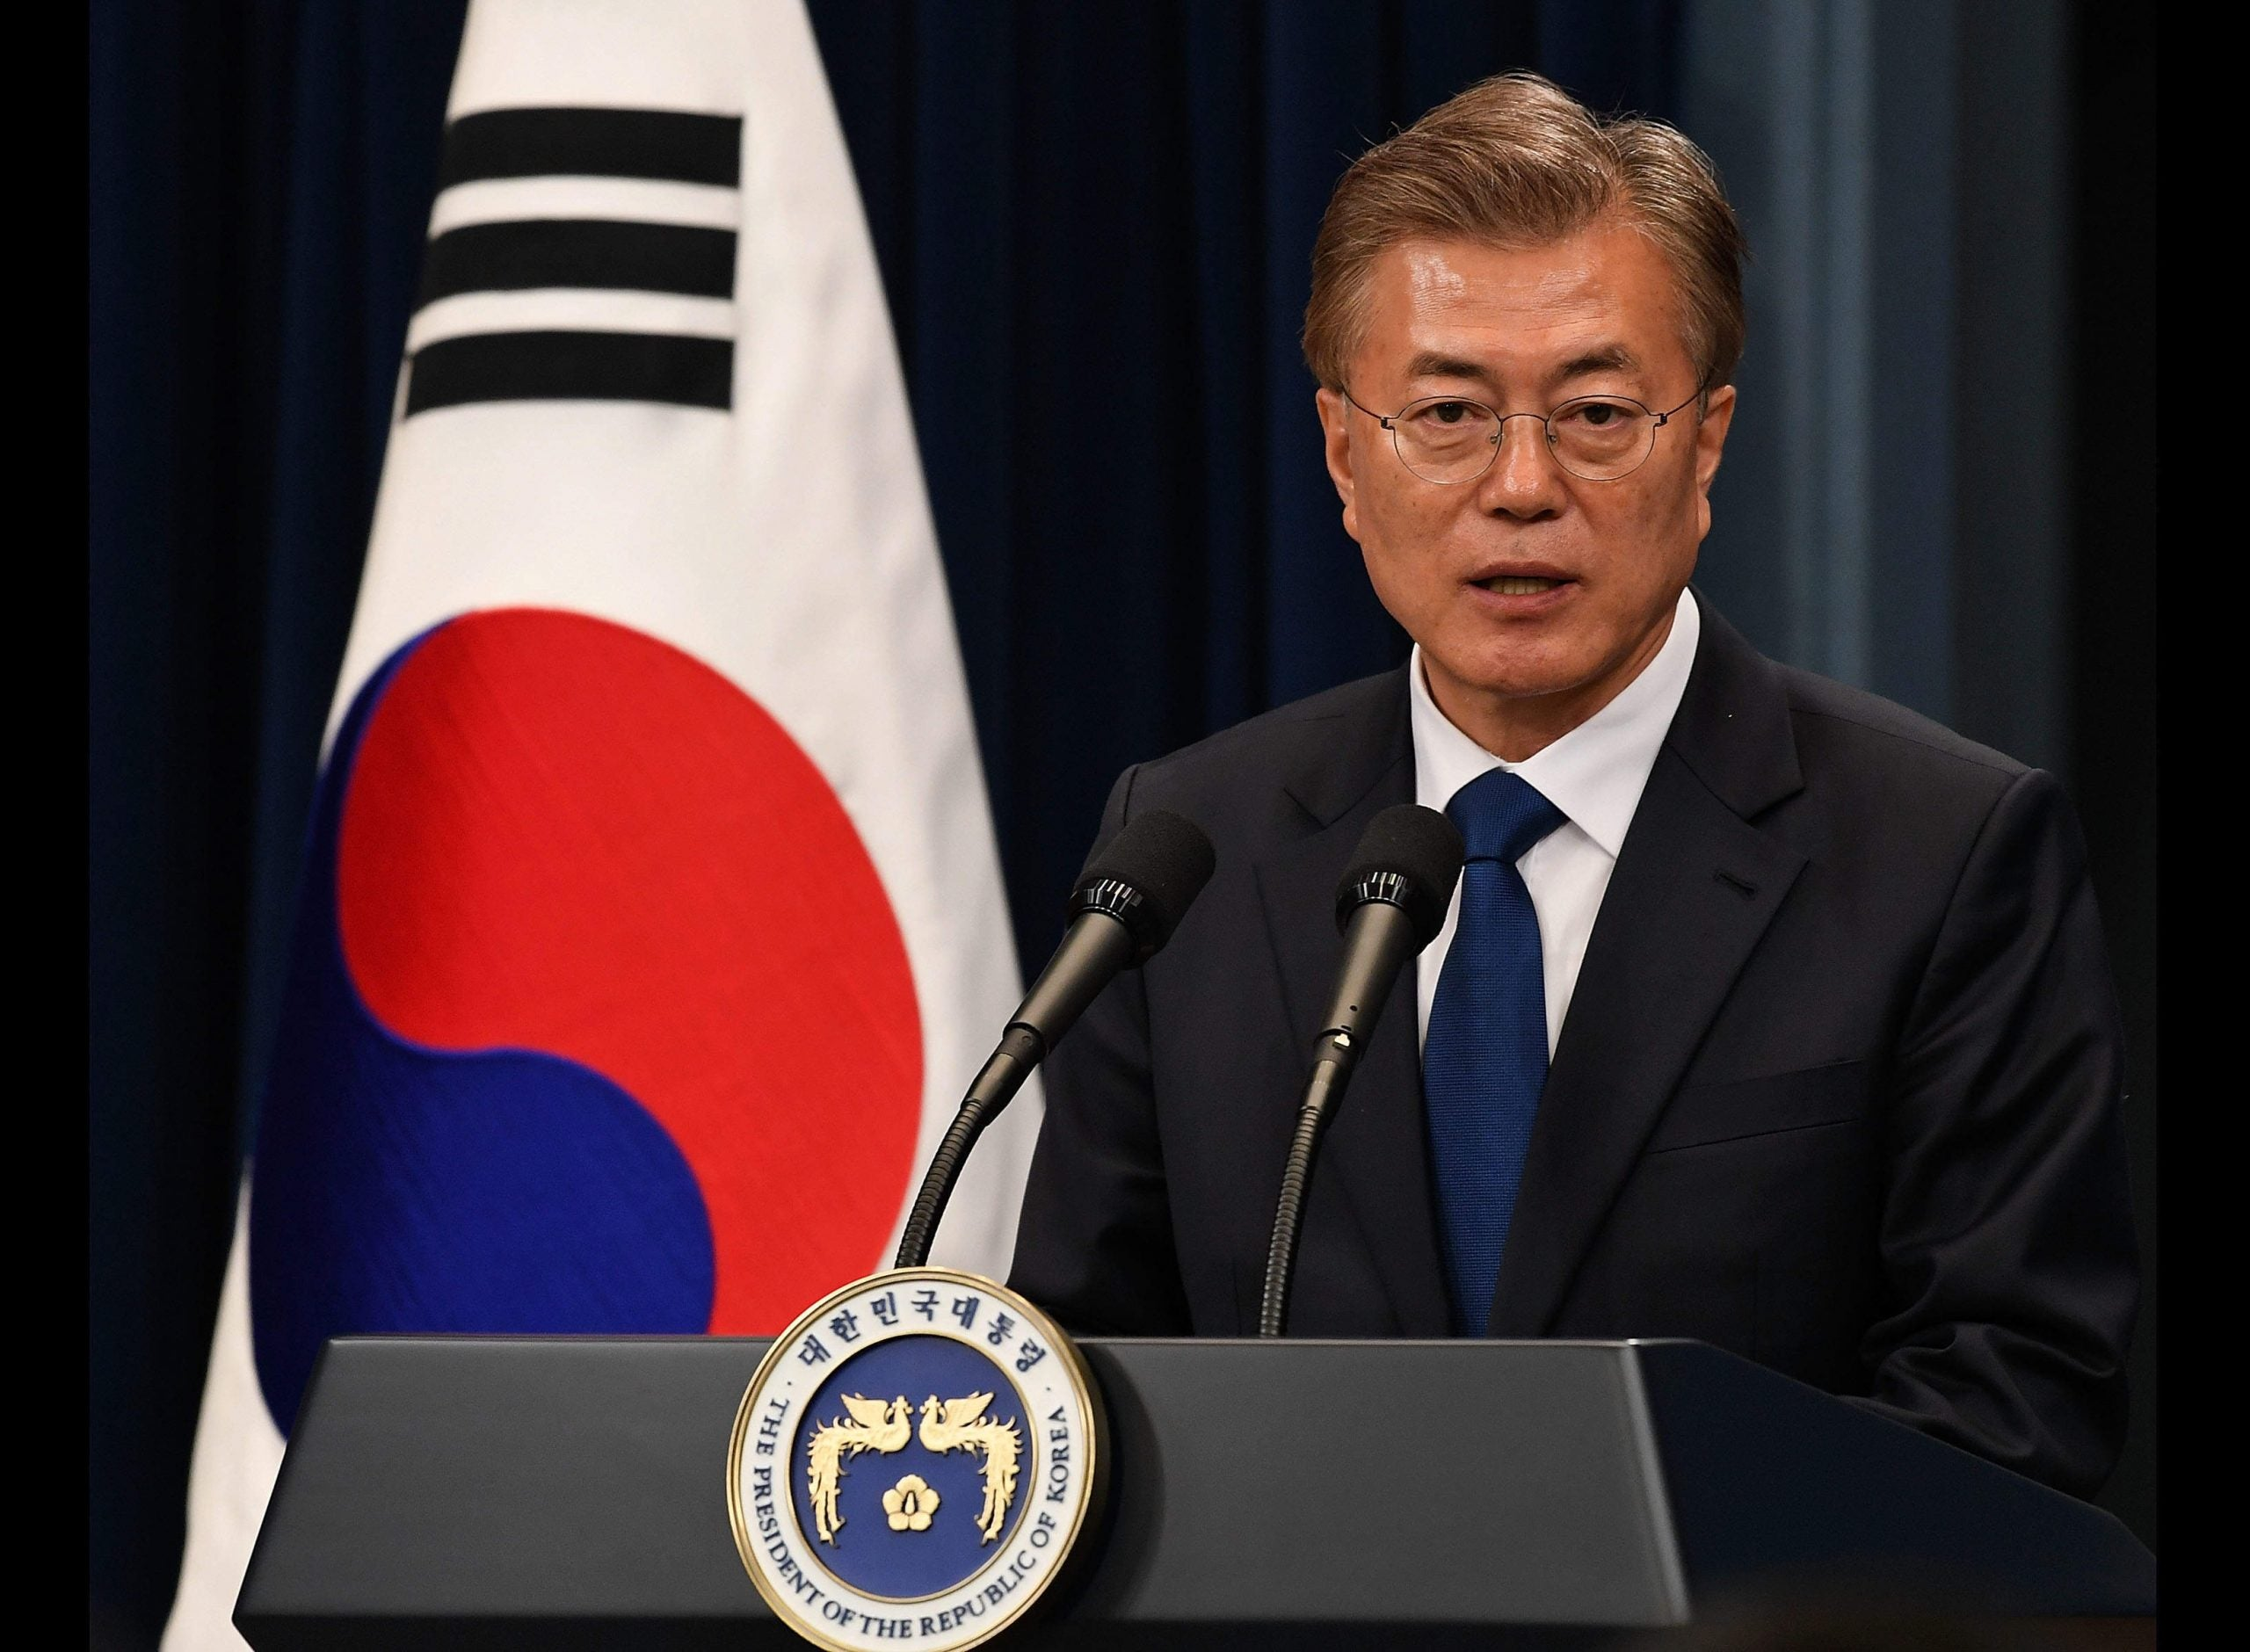 Does South Korea's new President mean a softer stance towards the North?